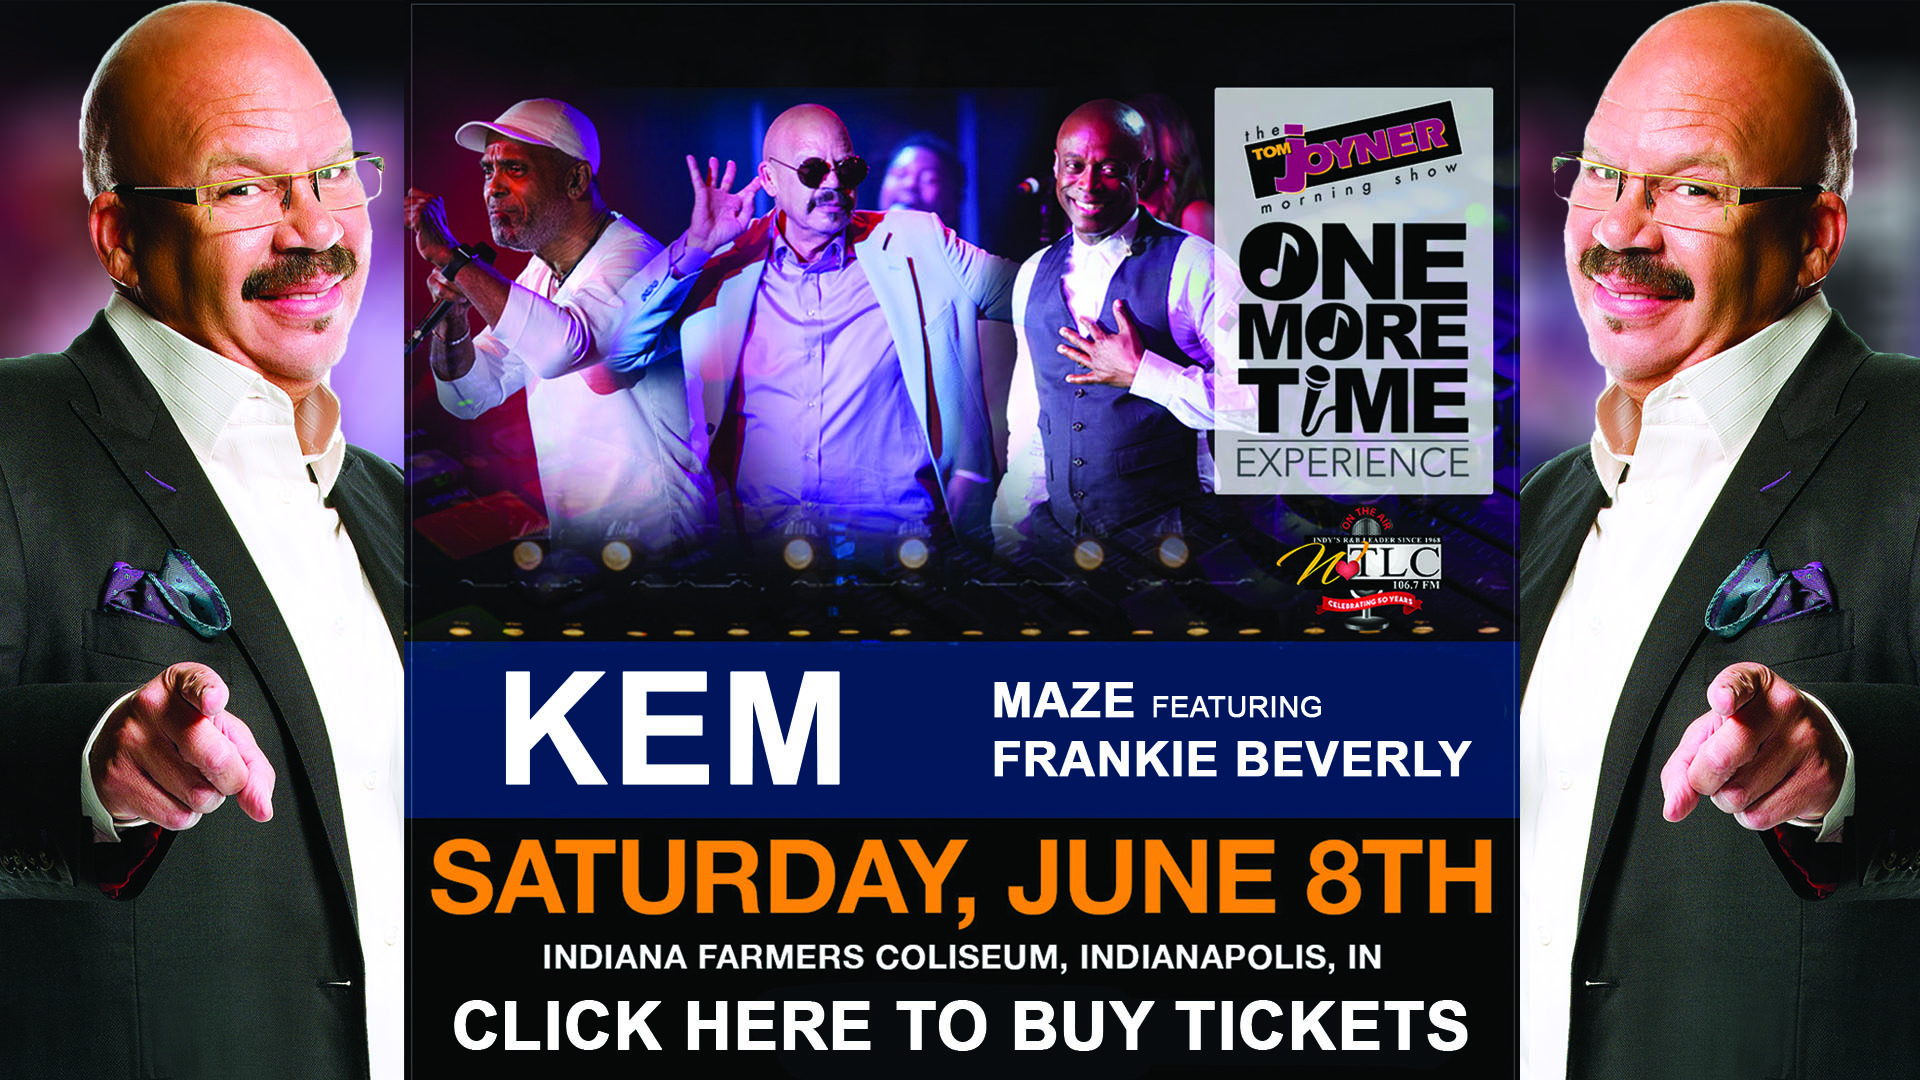 Tom Joyner's One More Time Experience Indy Flyer